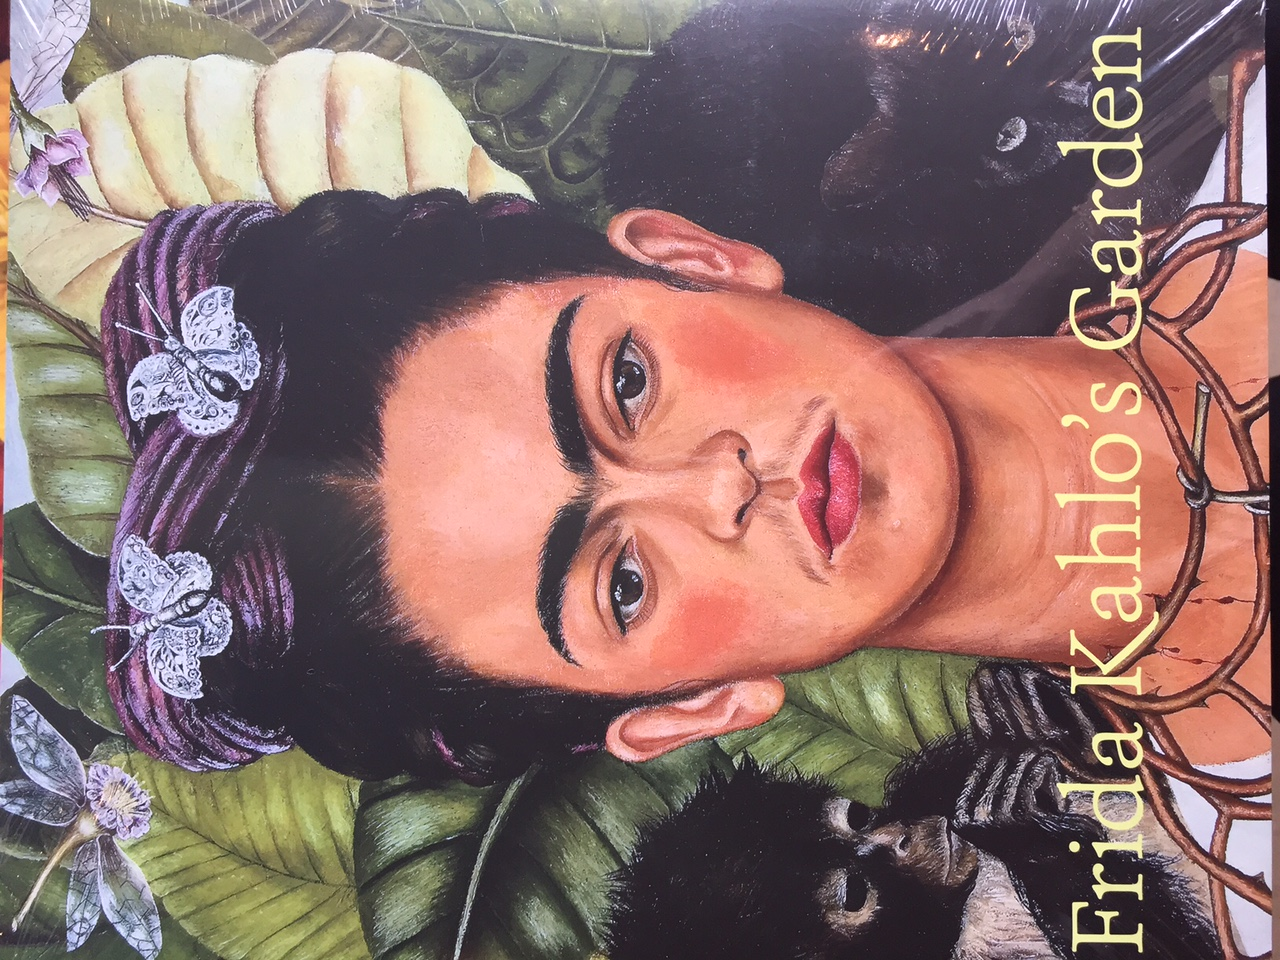 """I WAS BORN A BITCH. I WAS BORN A PAINTER."" - FRIDA KAHLO ; Frida Kahlo's Garden, available at NYBG gift shop."